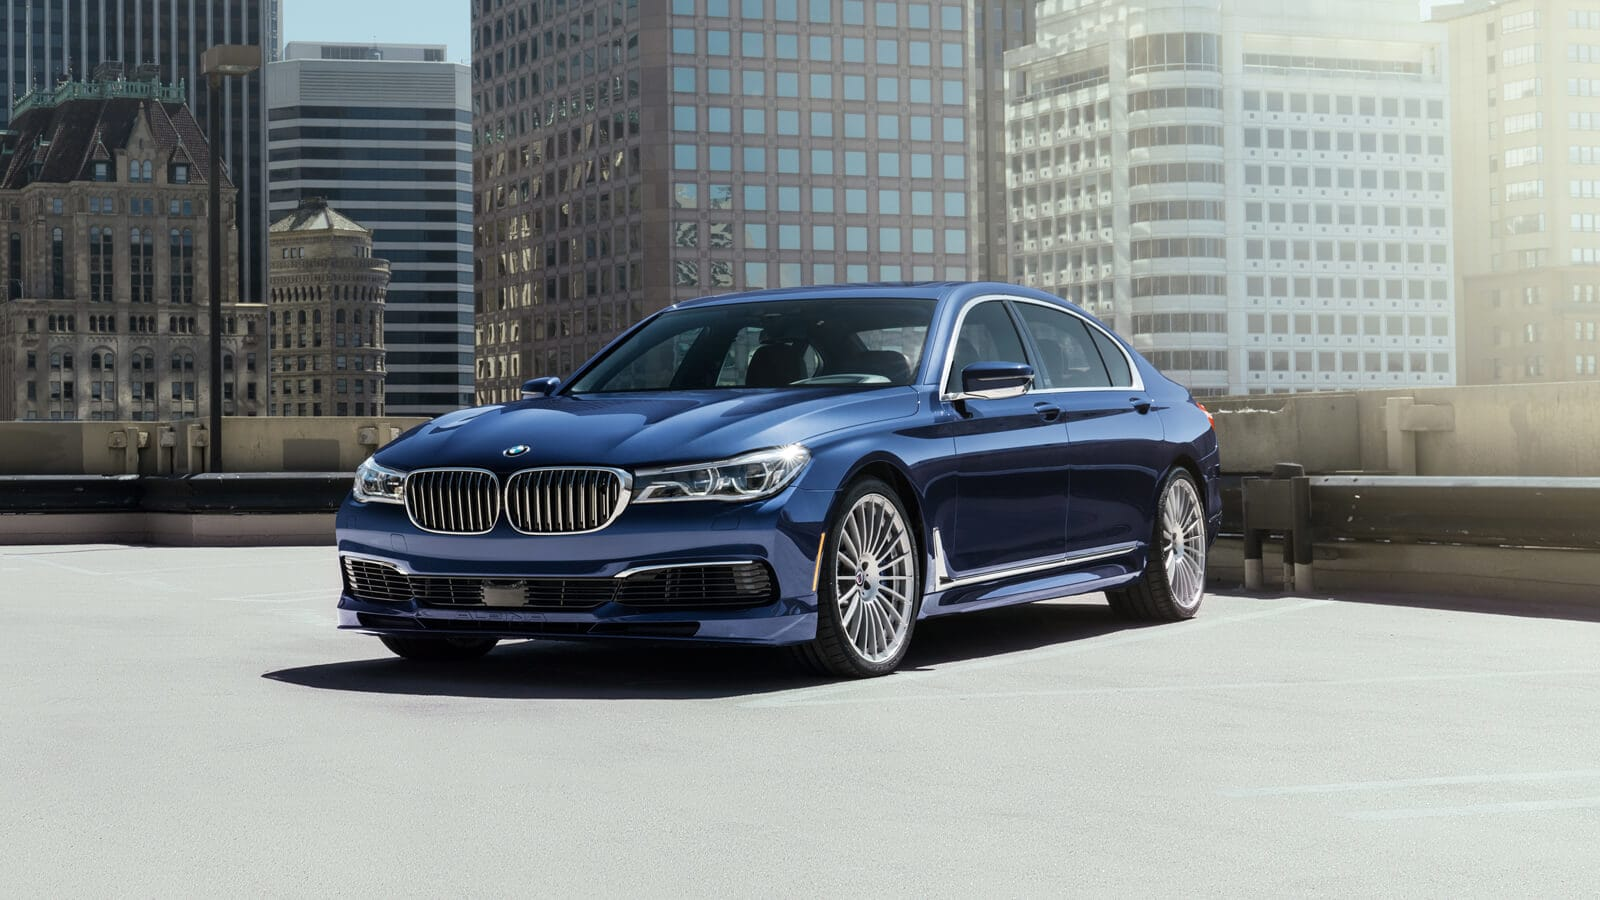 2019 BMW 7 Series Leasing near Whiting, IN